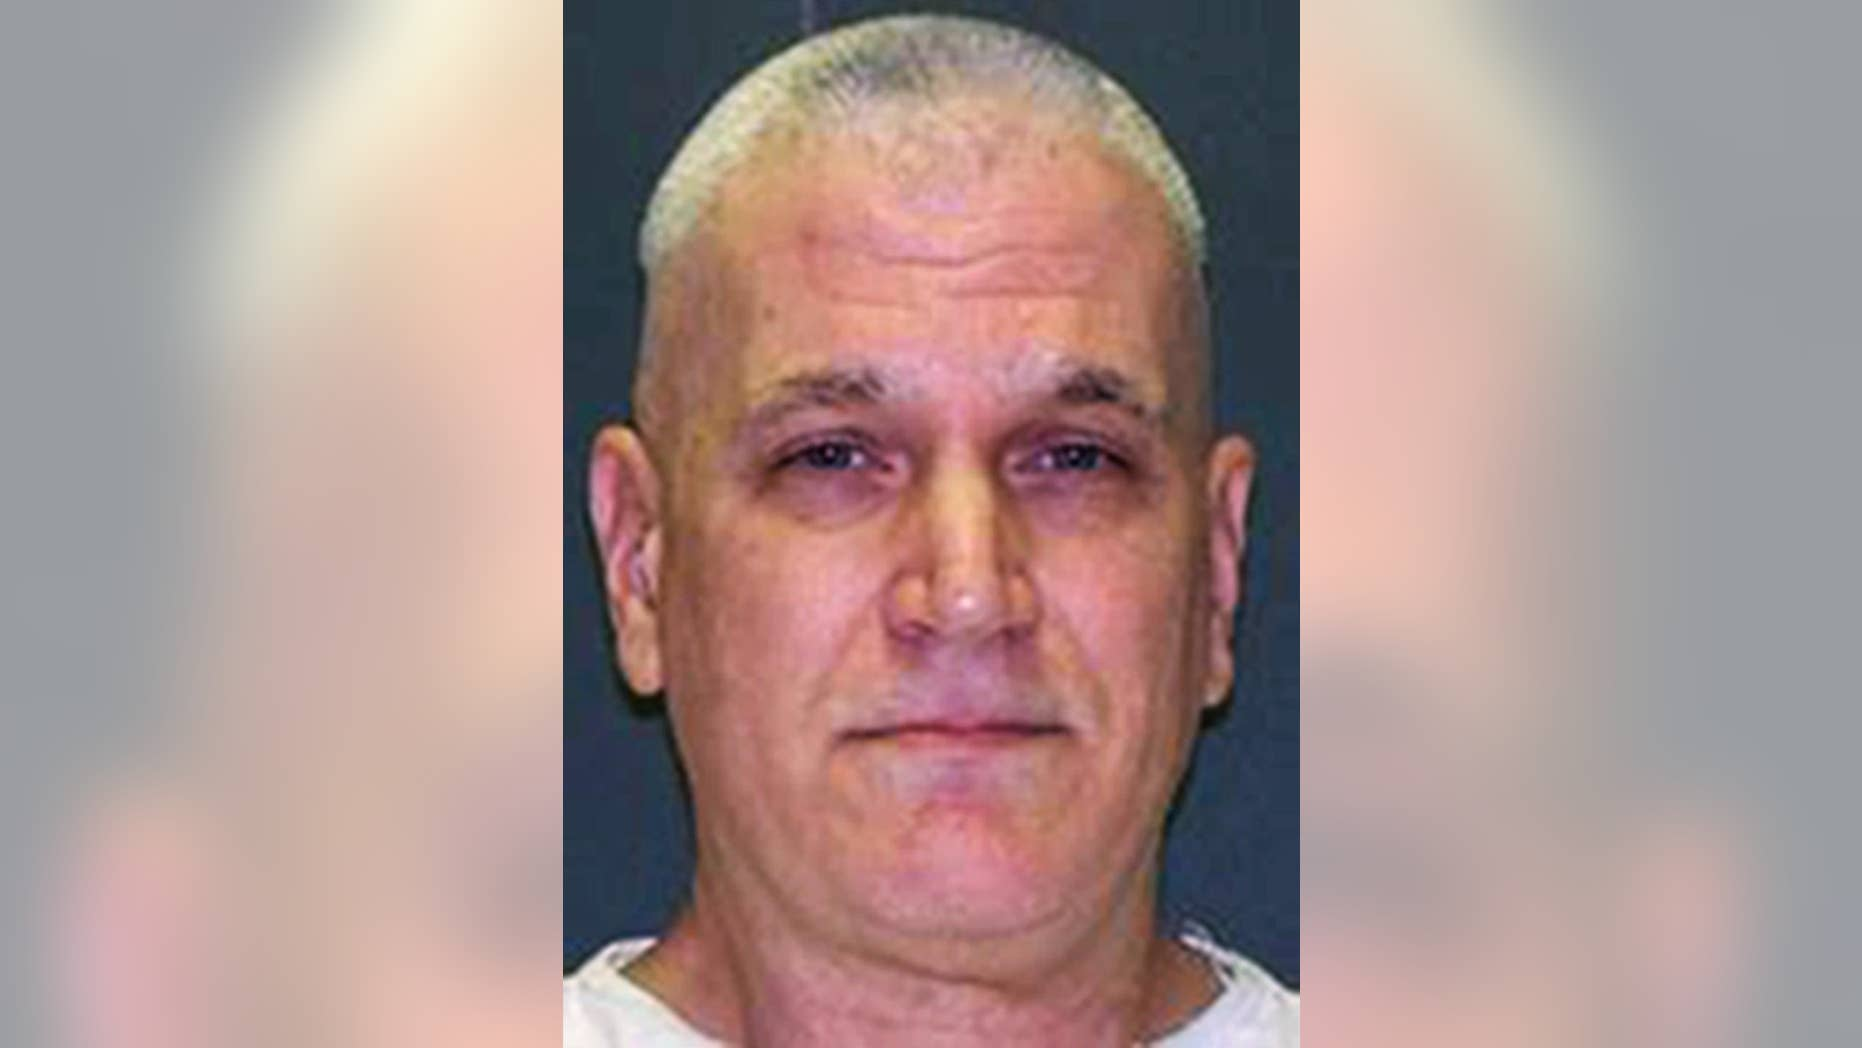 FILE - This undated file photo provided by the Texas Department of Criminal Justice shows John David Battaglia. A Texas judge on Friday, Nov. 18, 2016, ruled that Battaglia is mentally competent enough to be executed next month for fatally shooting his two young daughters more than 15 years ago while their mother listened helplessly over the phone. (Texas Department of Criminal Justice via AP, File)